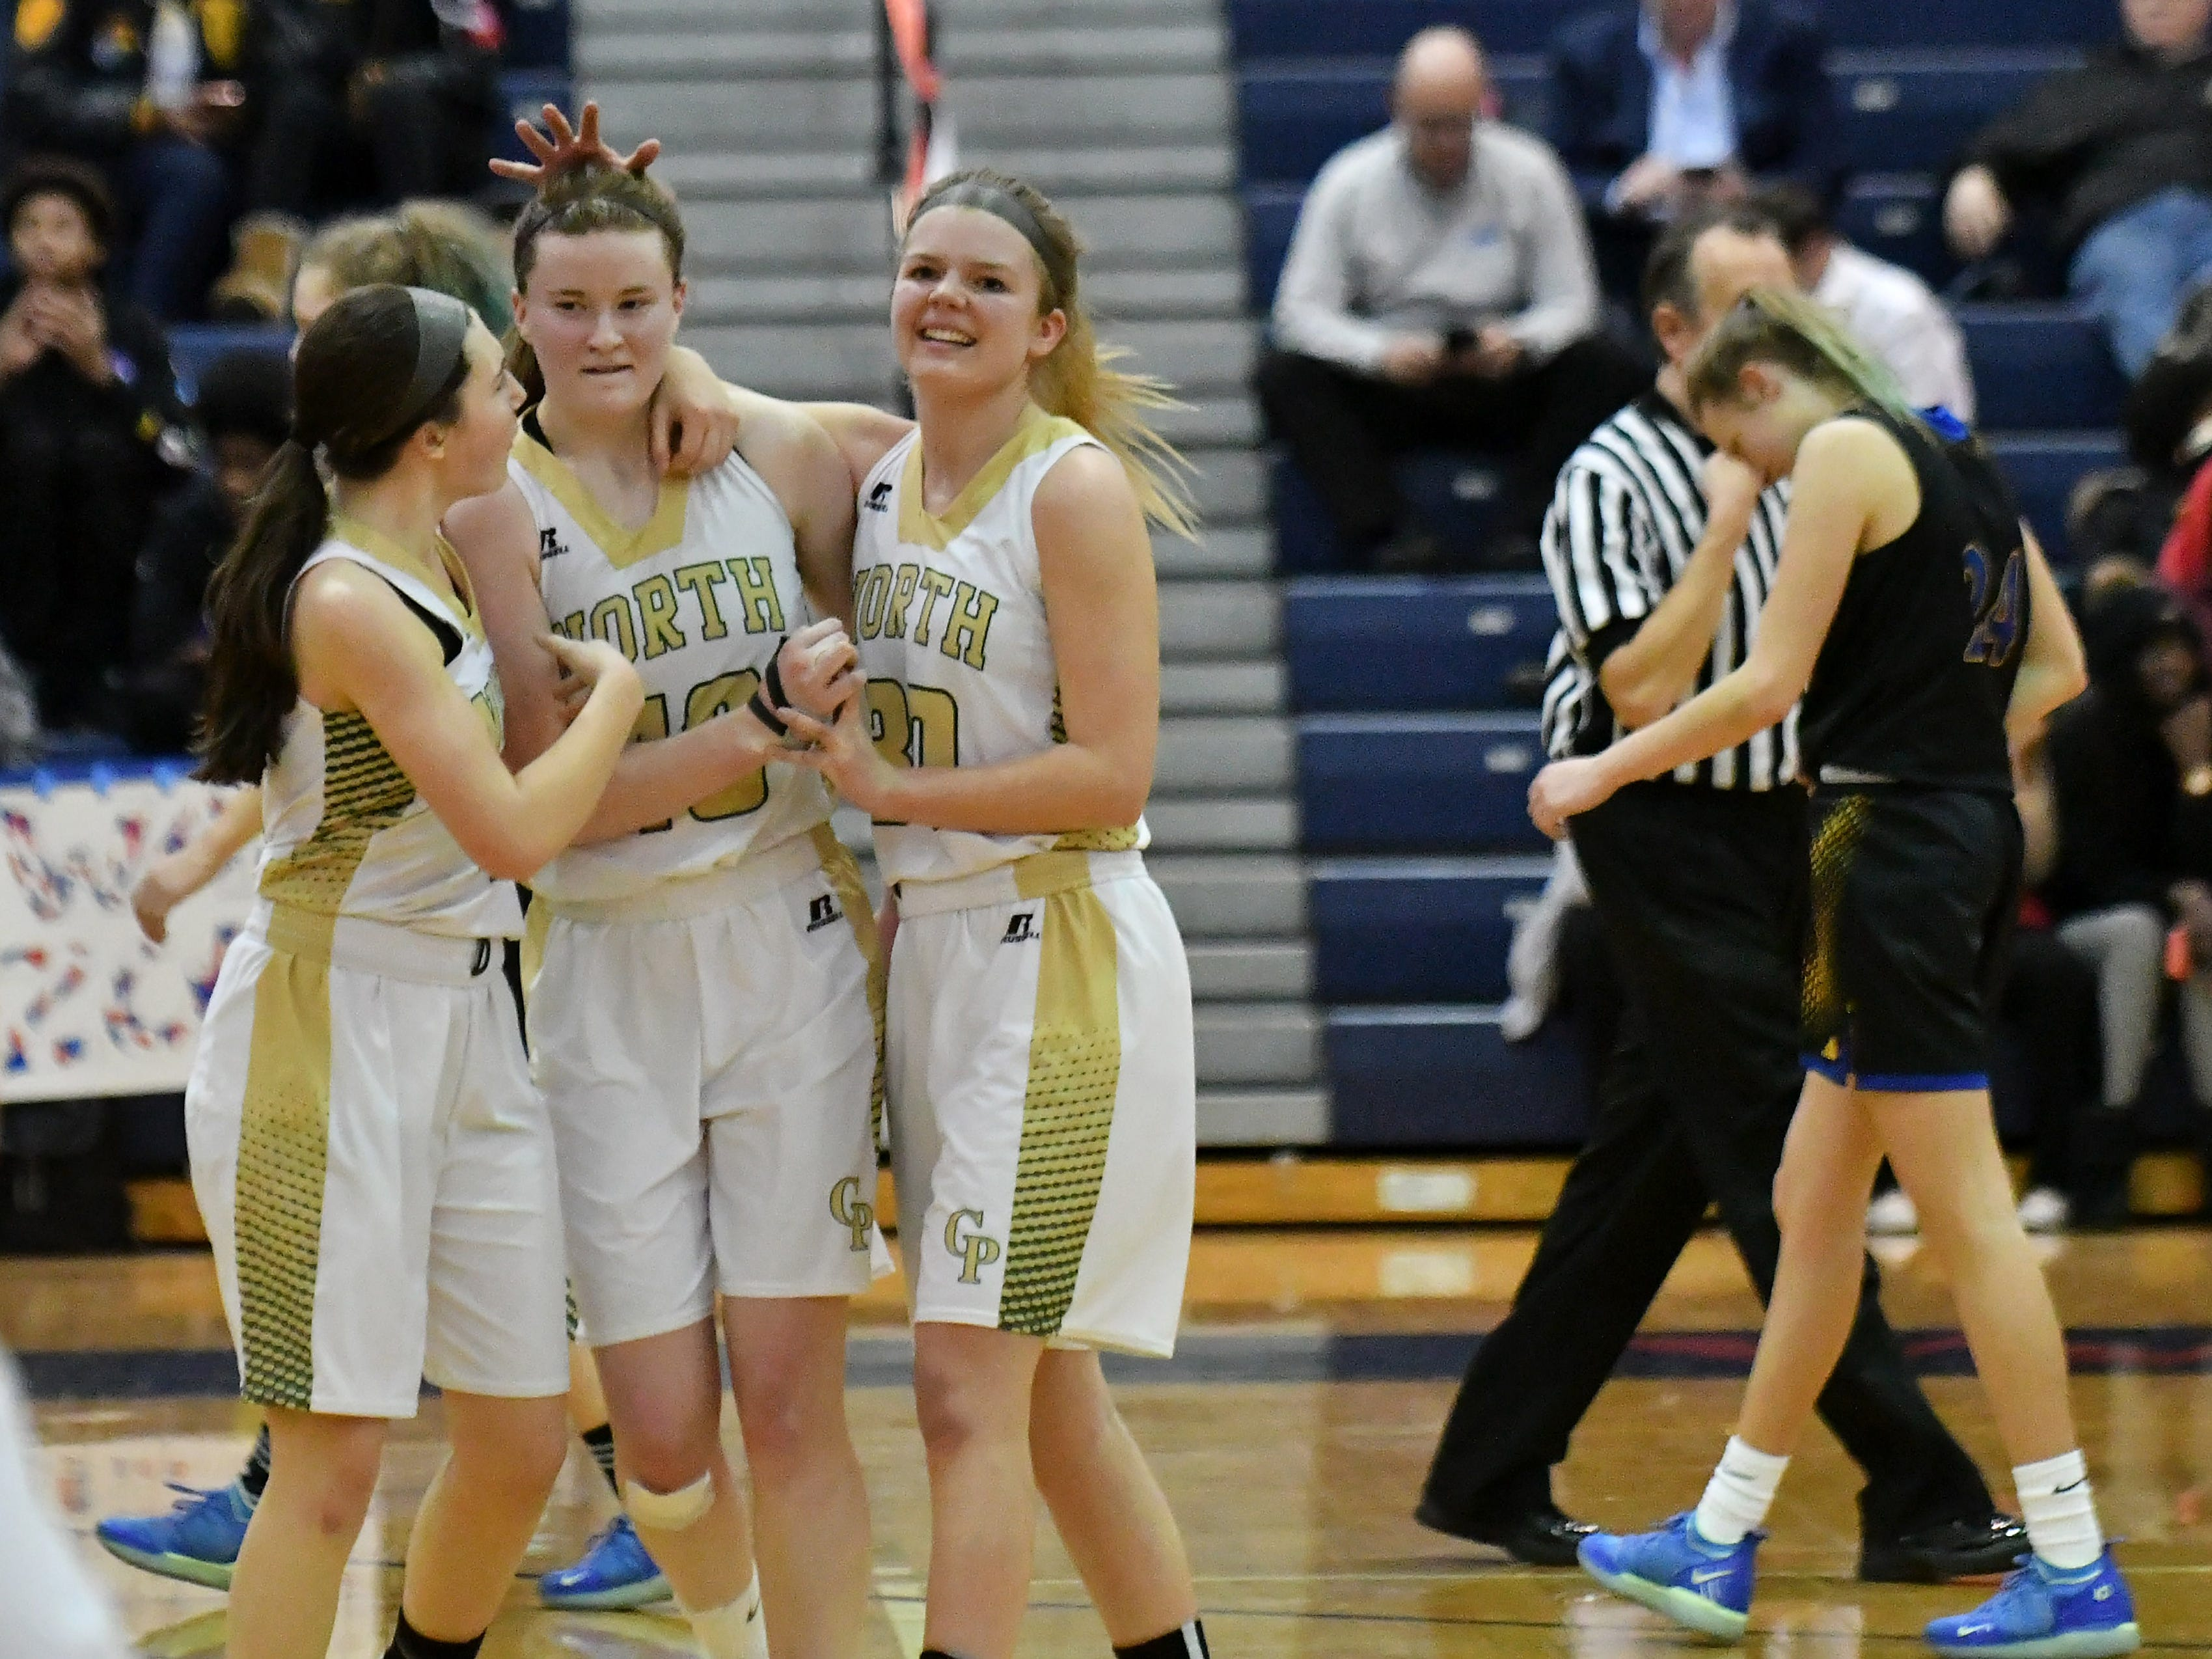 Grosse Pointe North teammates, from left, Maddie Kohler, Julia Ayrault and Maddie Mills celebrate the win.